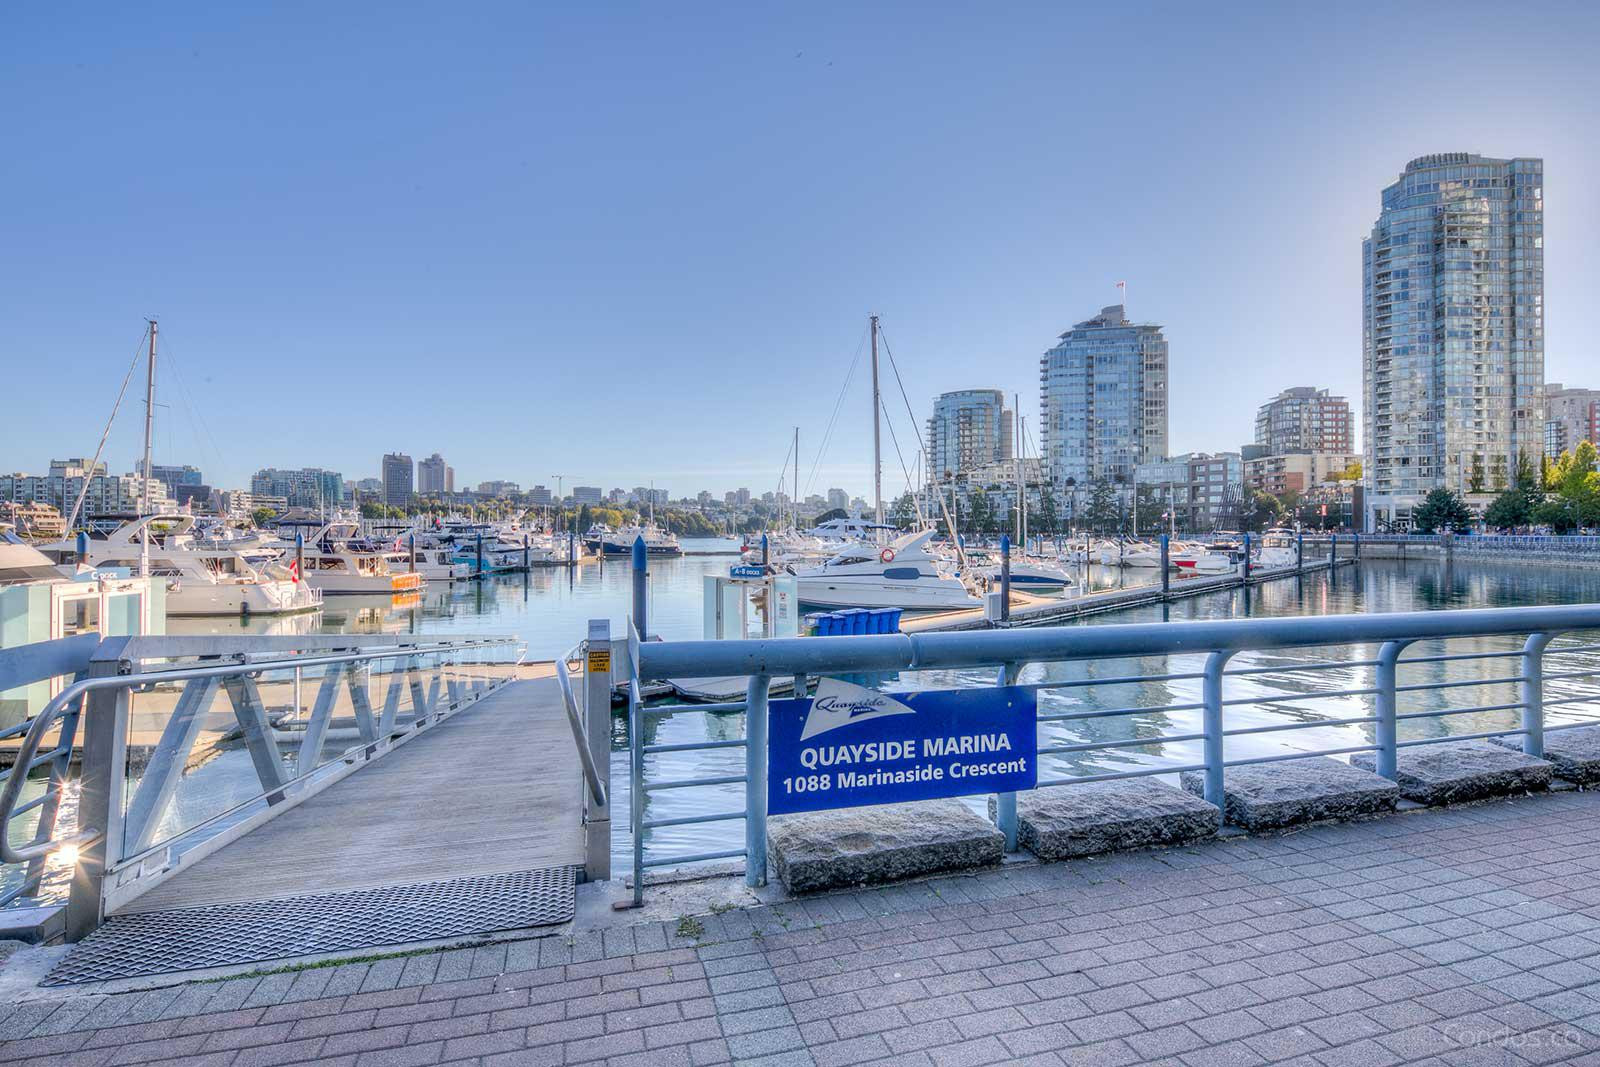 Quayside Marina at 1088 Marinaside Crescent, Vancouver 0